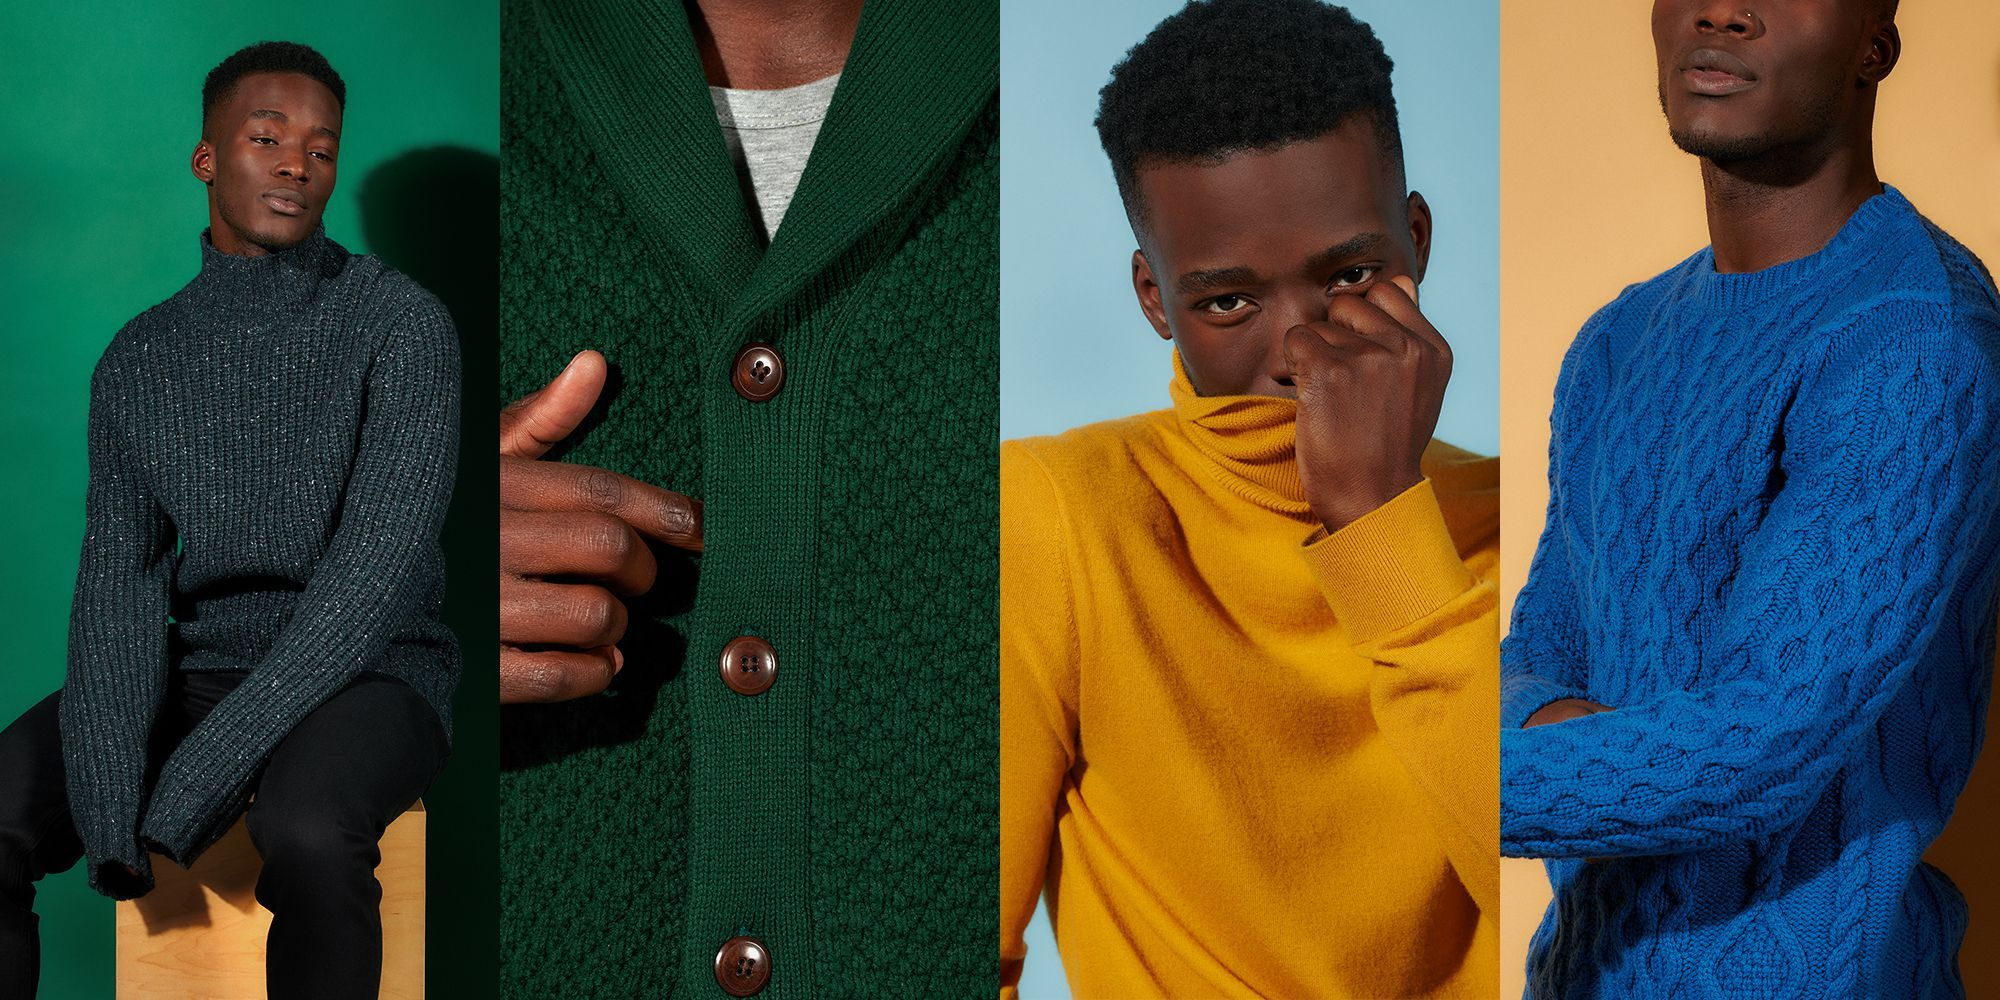 deeb387f Sweater Styles Guide for Men - 13 Top Men's Sweater Trends 2018